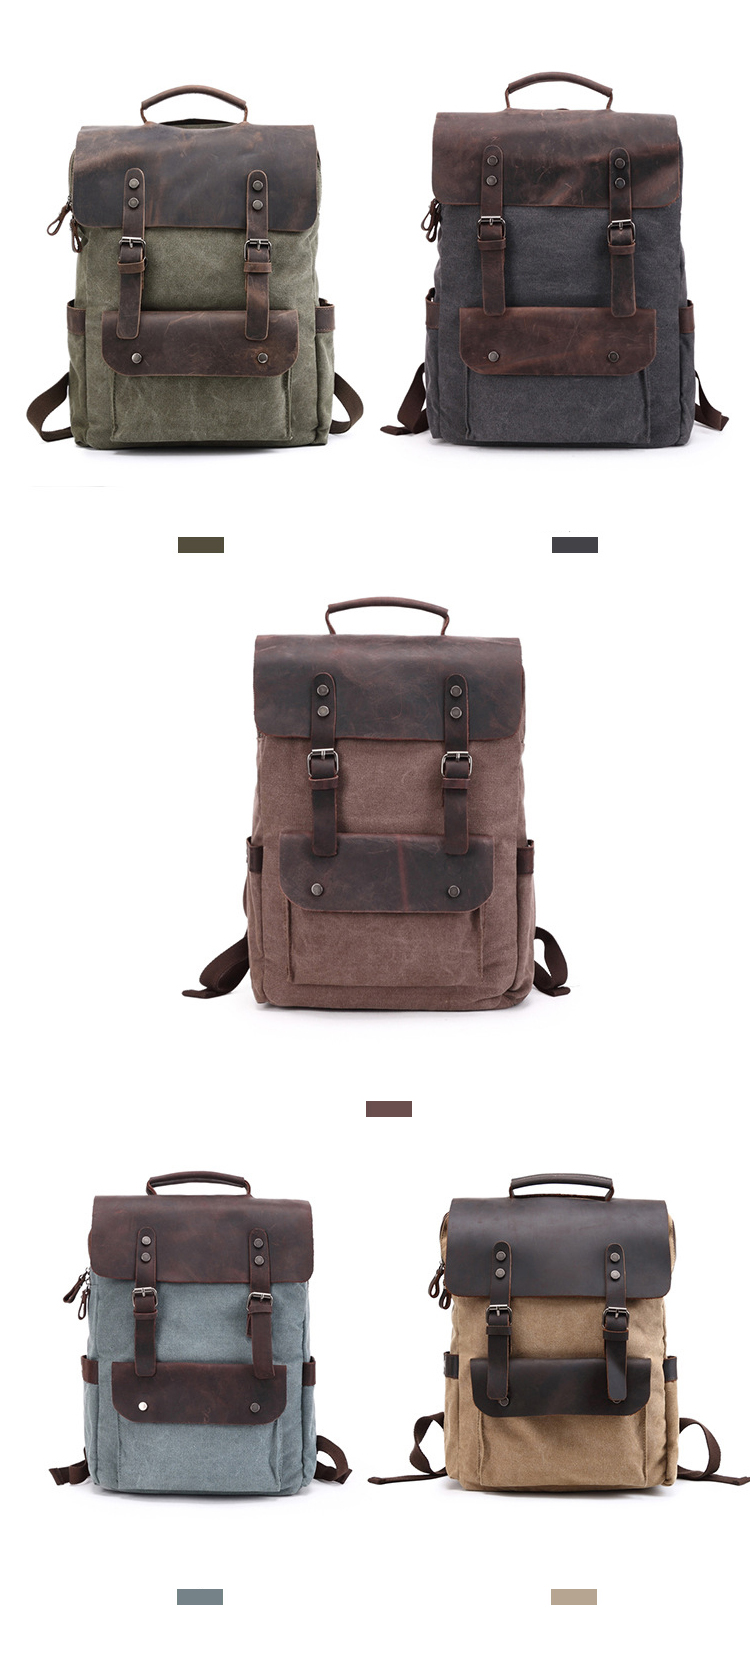 Retro 16Oz Washed Canvas Design Daily Use Durable Crazy Horse Leather Backpack Rucksack Back Pack Bag